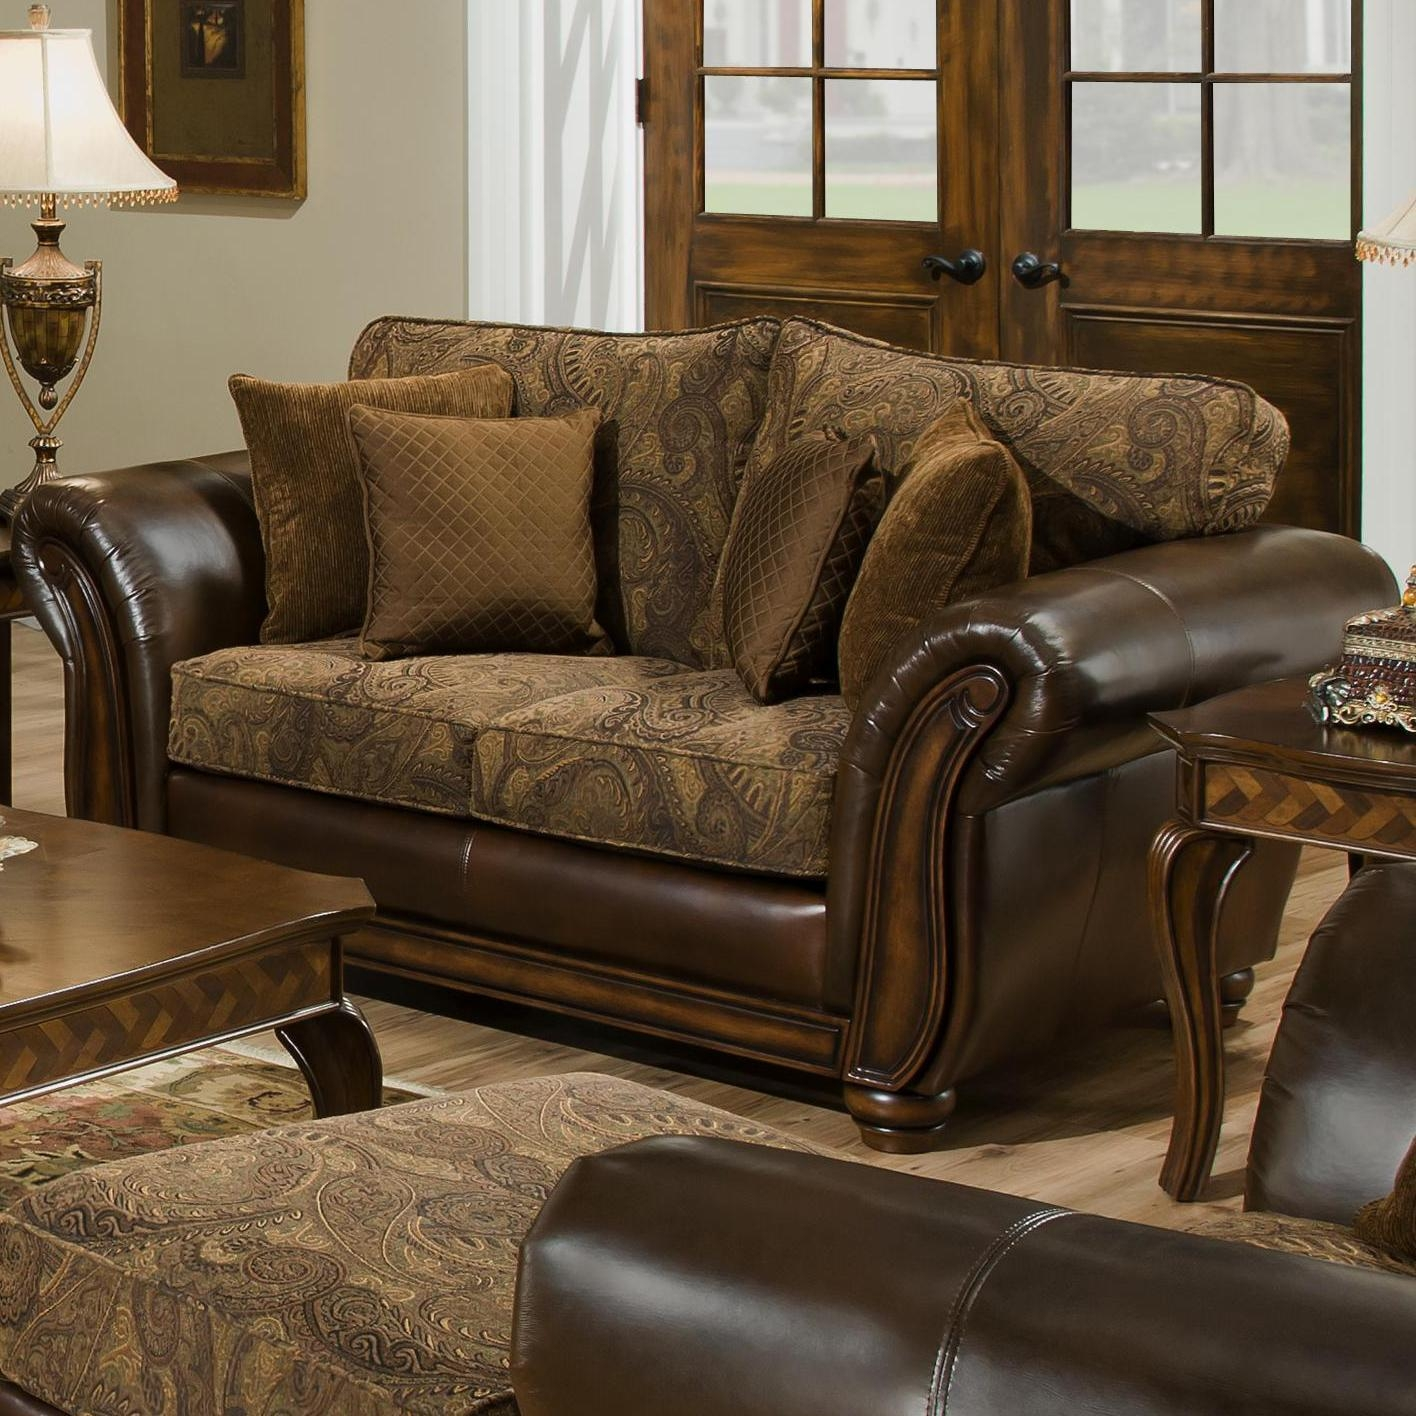 Simmons Upholstery 8104 Queen Leather And Chenille Hide A Bed Sofa Inside Simmons Leather Sofas (Image 13 of 20)